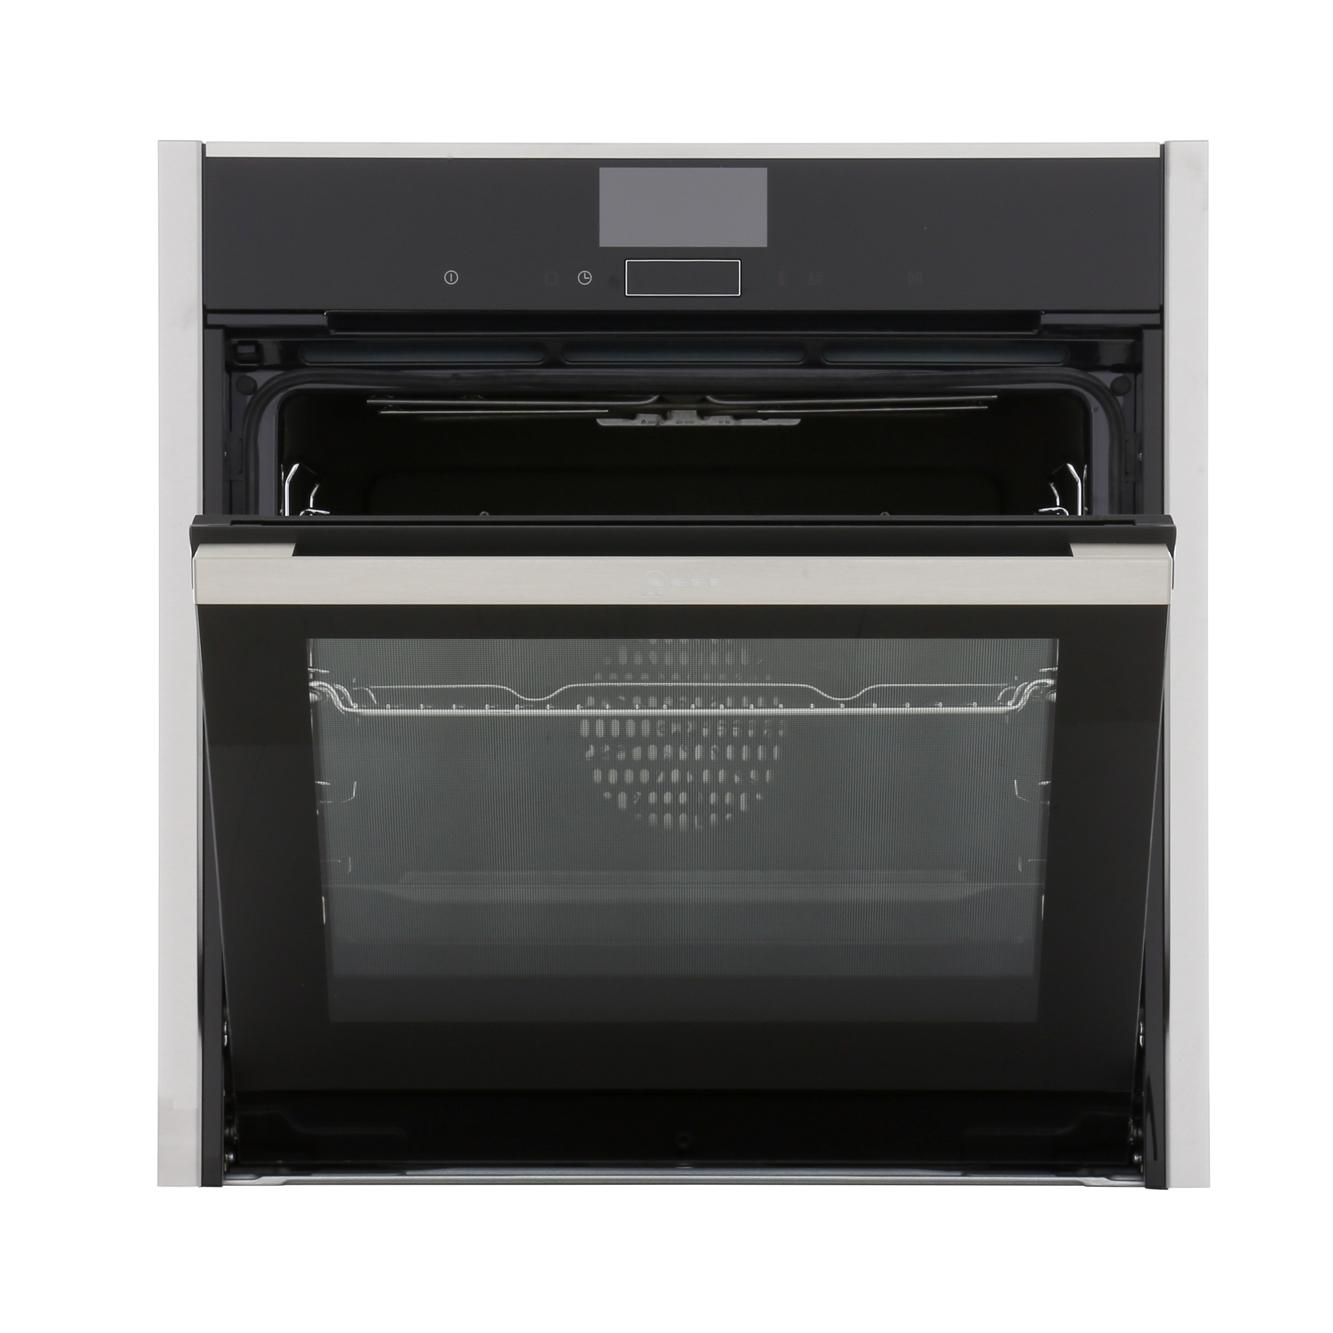 Buy neff b47cs34n0b single built in electric oven stainless steel marks electrical - Neff electric ...